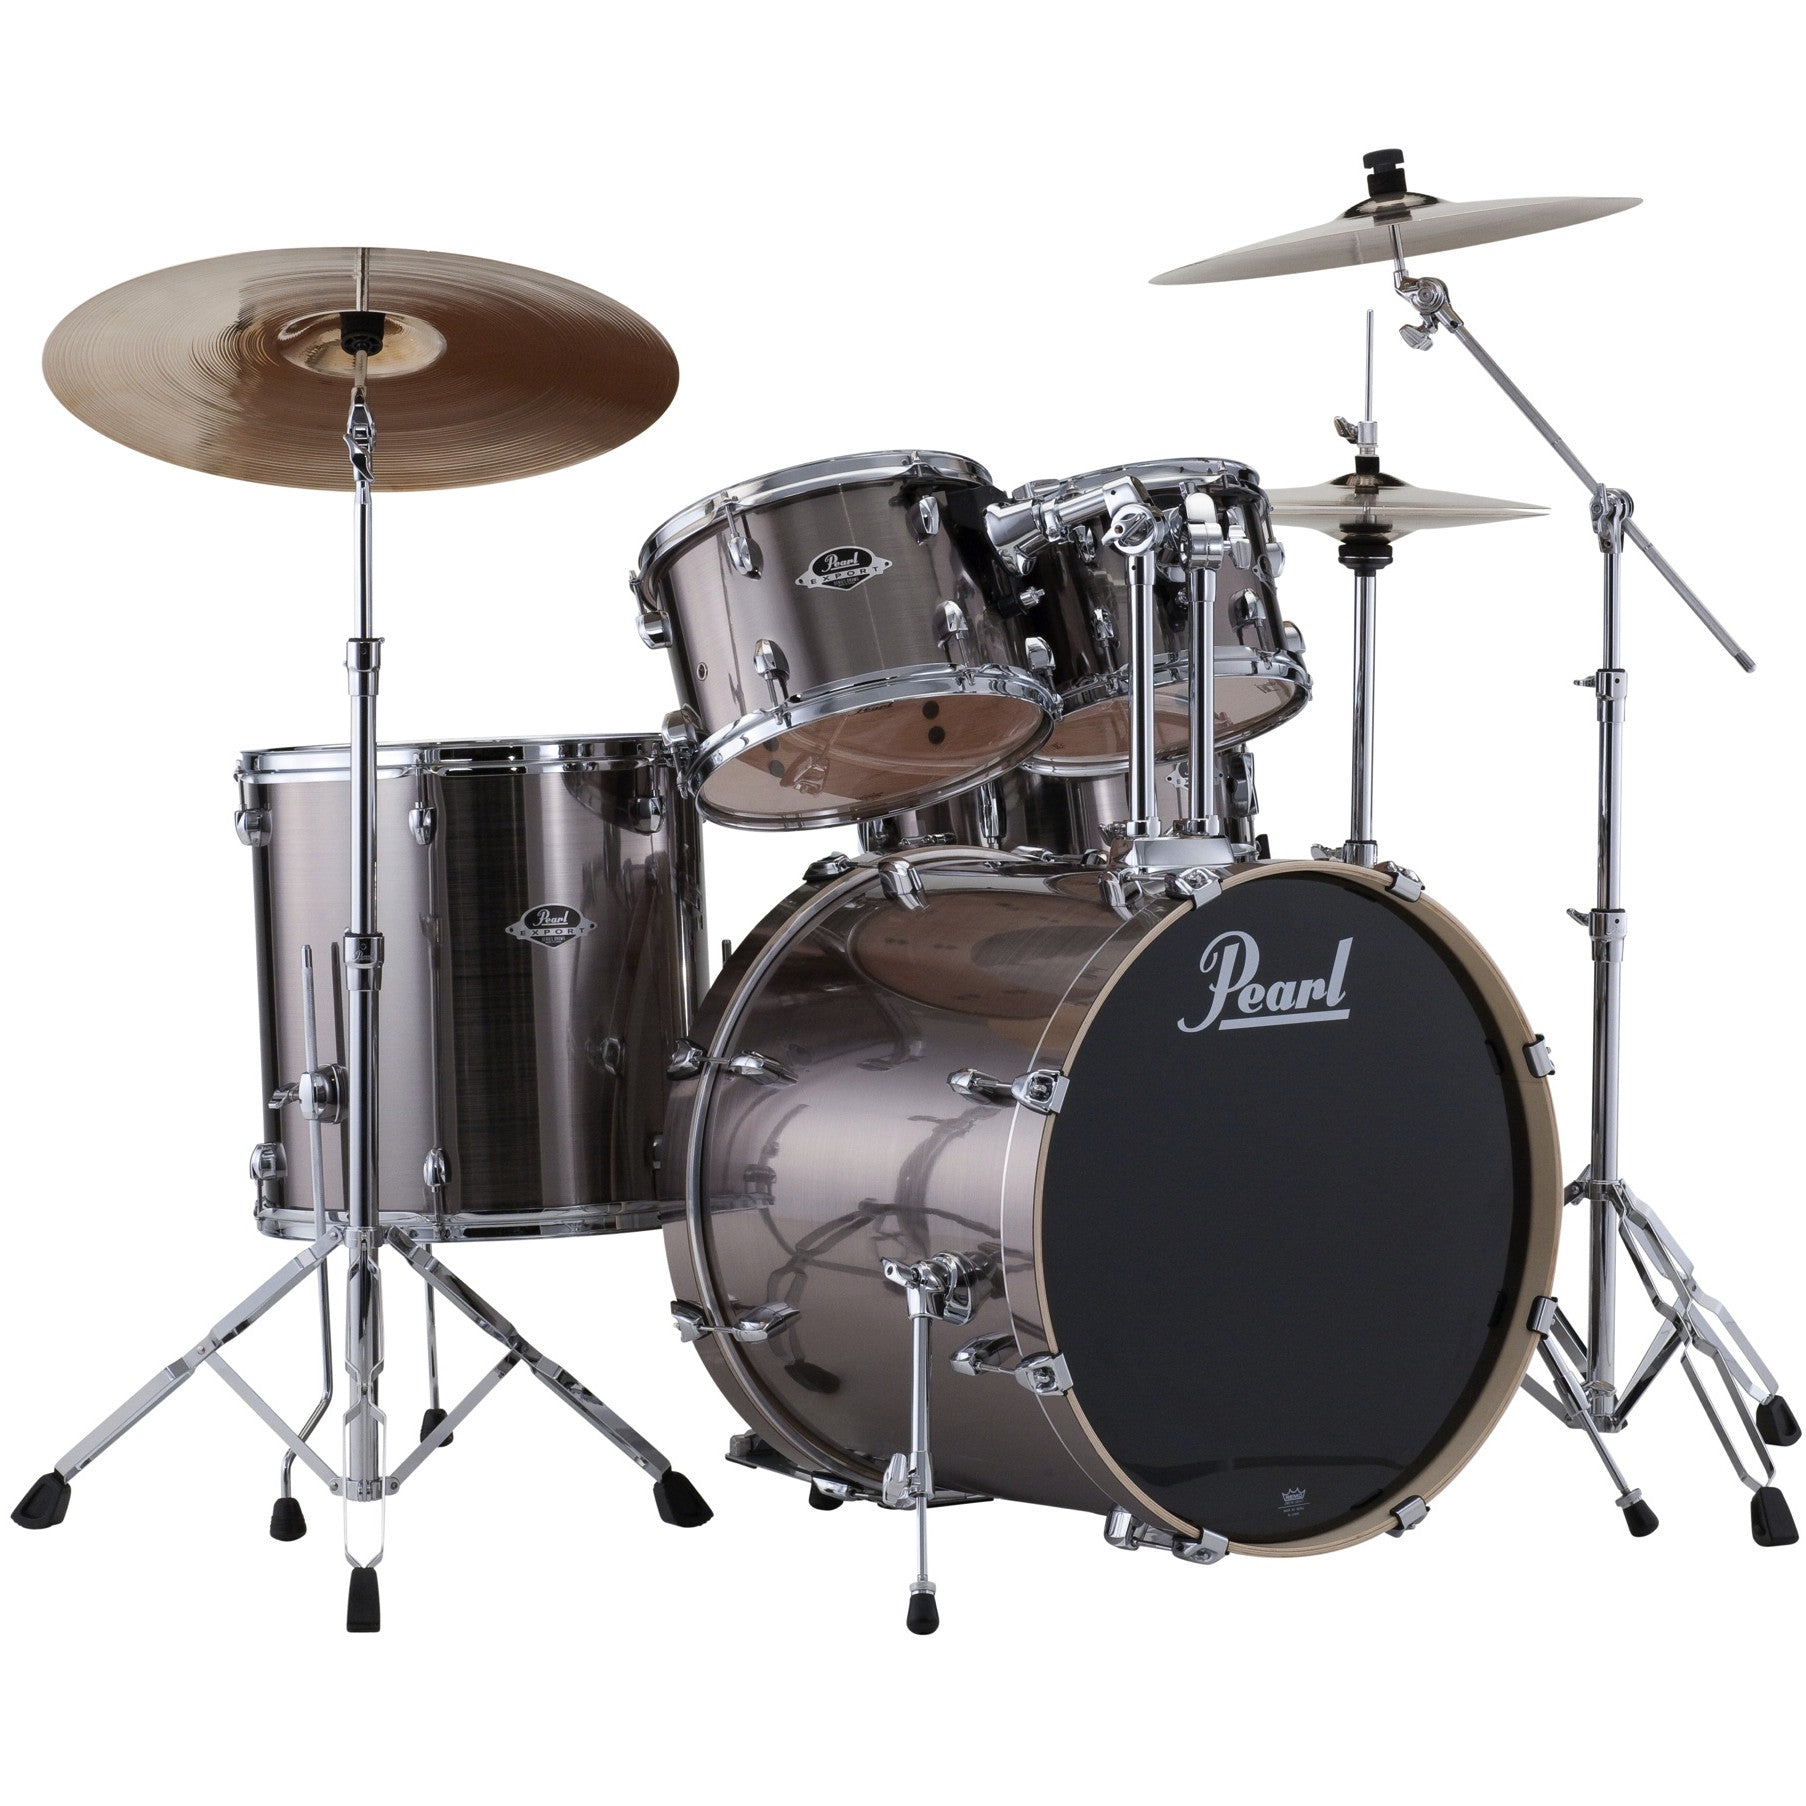 pearl drums for sale south africa exx 5 piece drum set music experience. Black Bedroom Furniture Sets. Home Design Ideas